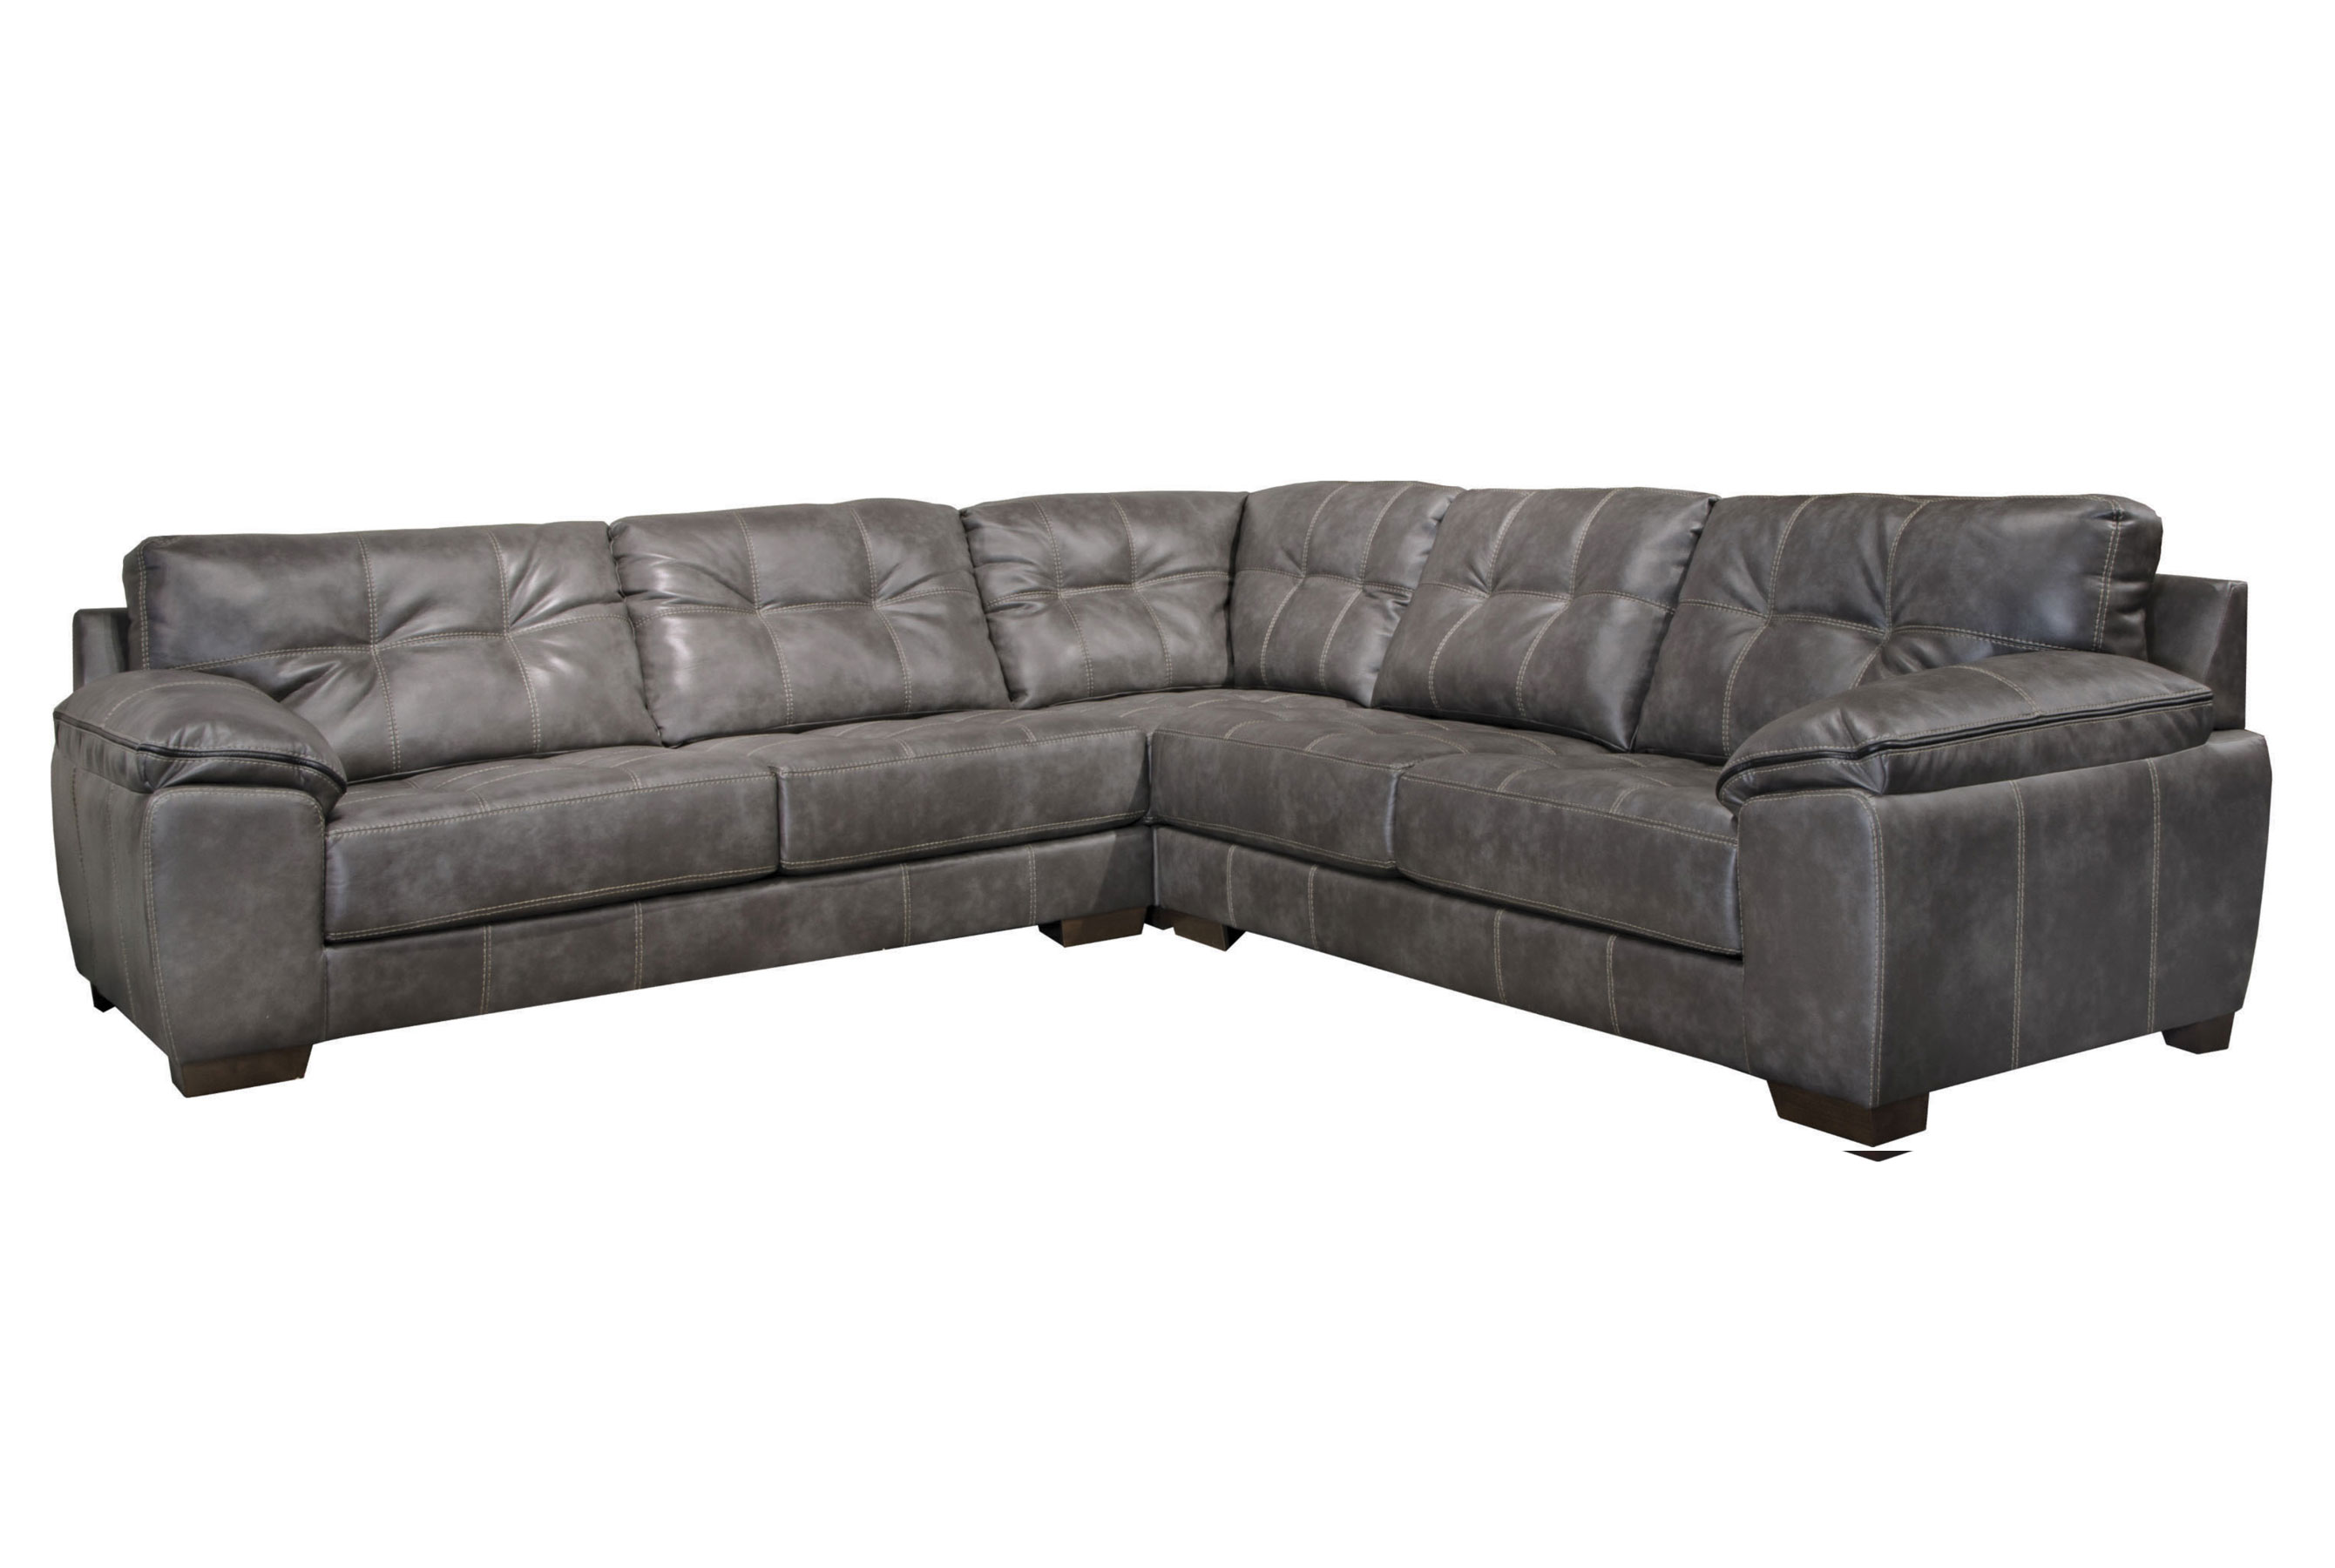 Hudson Sofa Collection Reviews Hudson 3 Piece Sectional Includes Pillows Sofas And